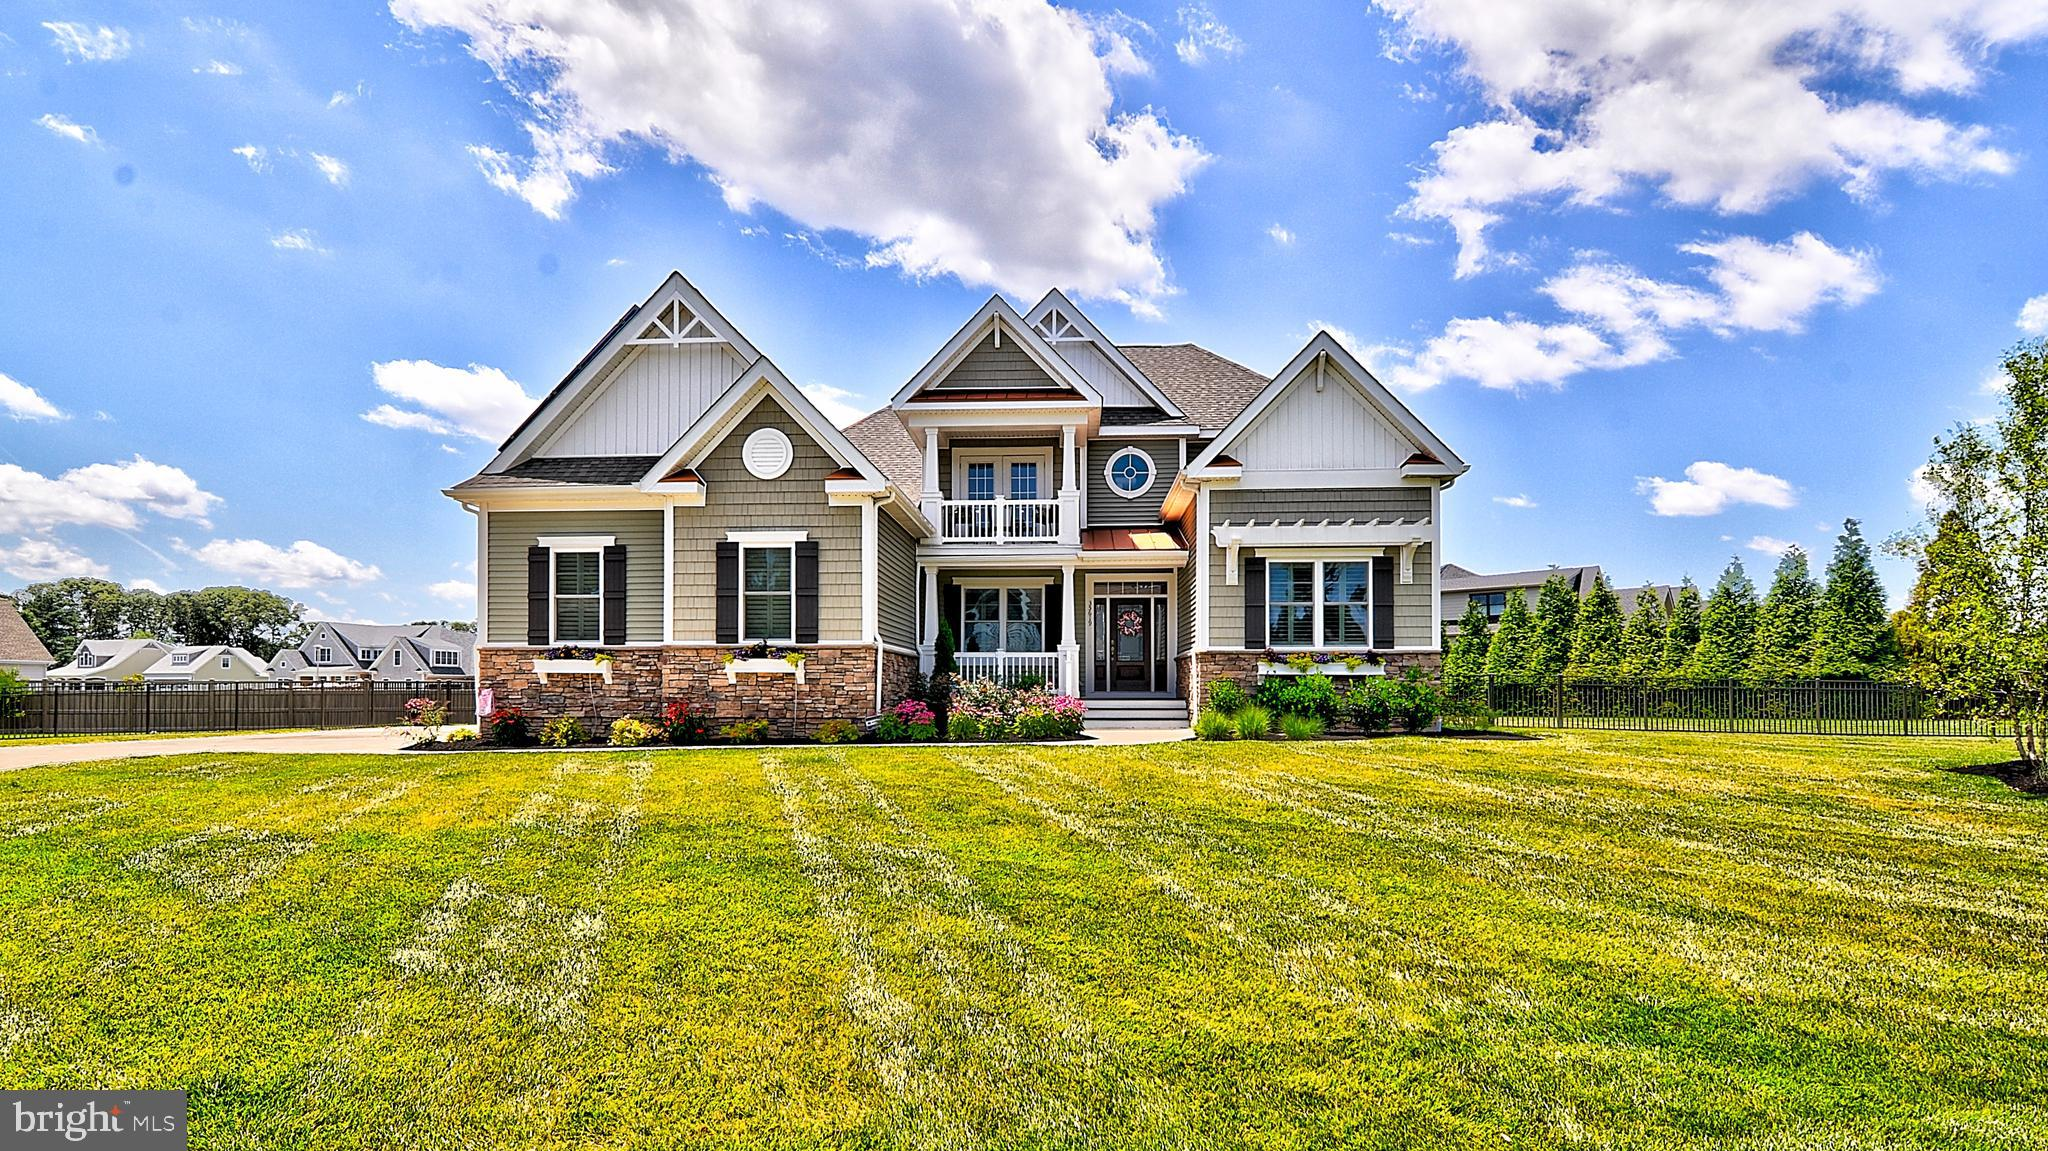 Newly built spacious home with cathedral ceilings, wide open views and an open floor plan has 4 bedr